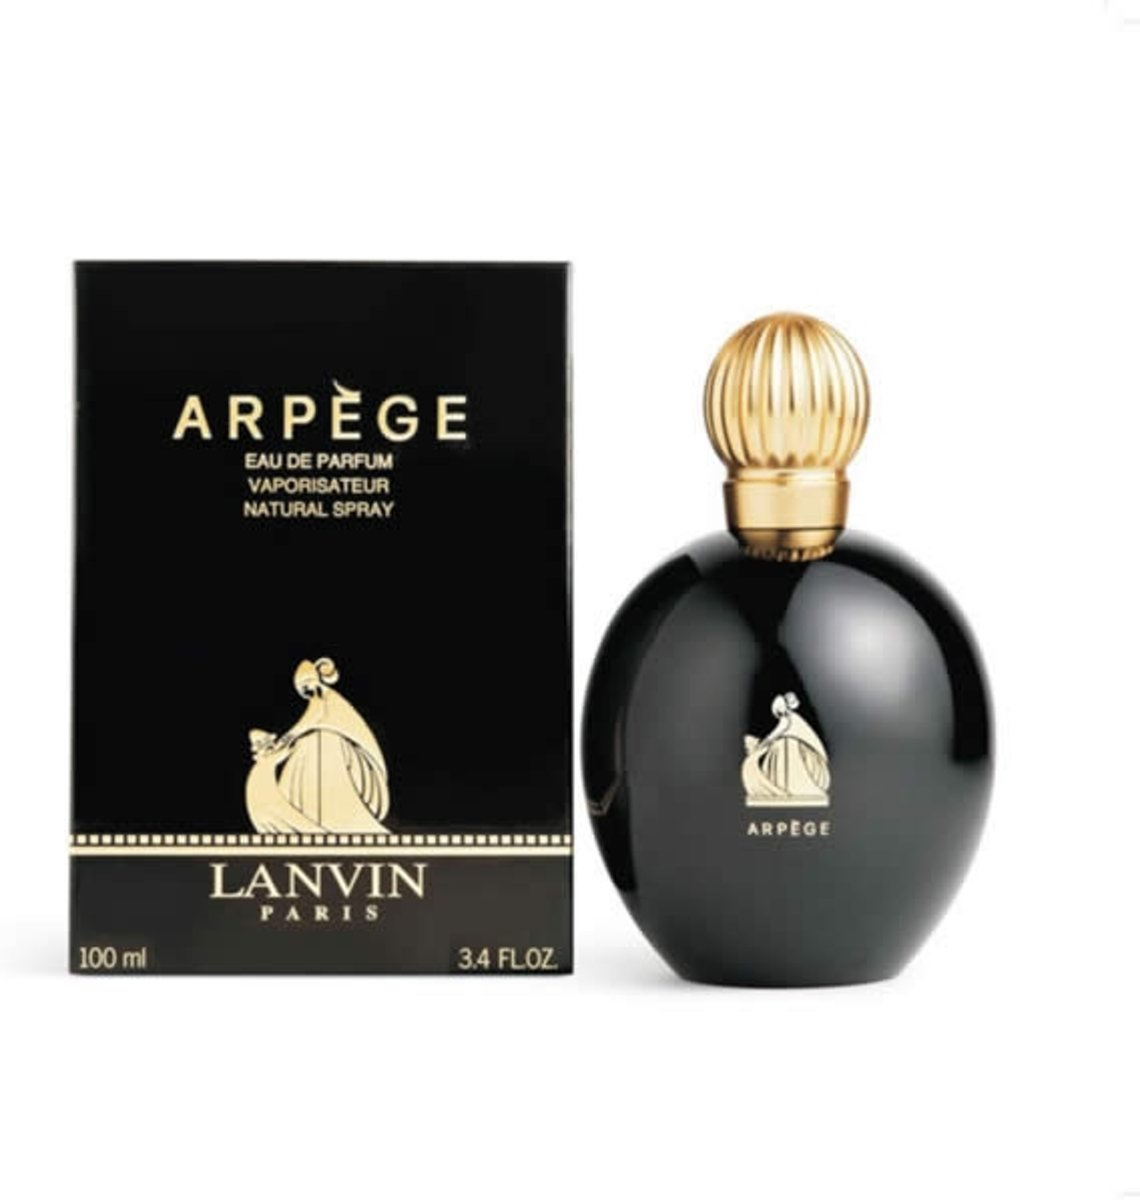 MULTI BUNDEL 3 stuks Lanvin Arpege Eau De Perfume Spray 100ml